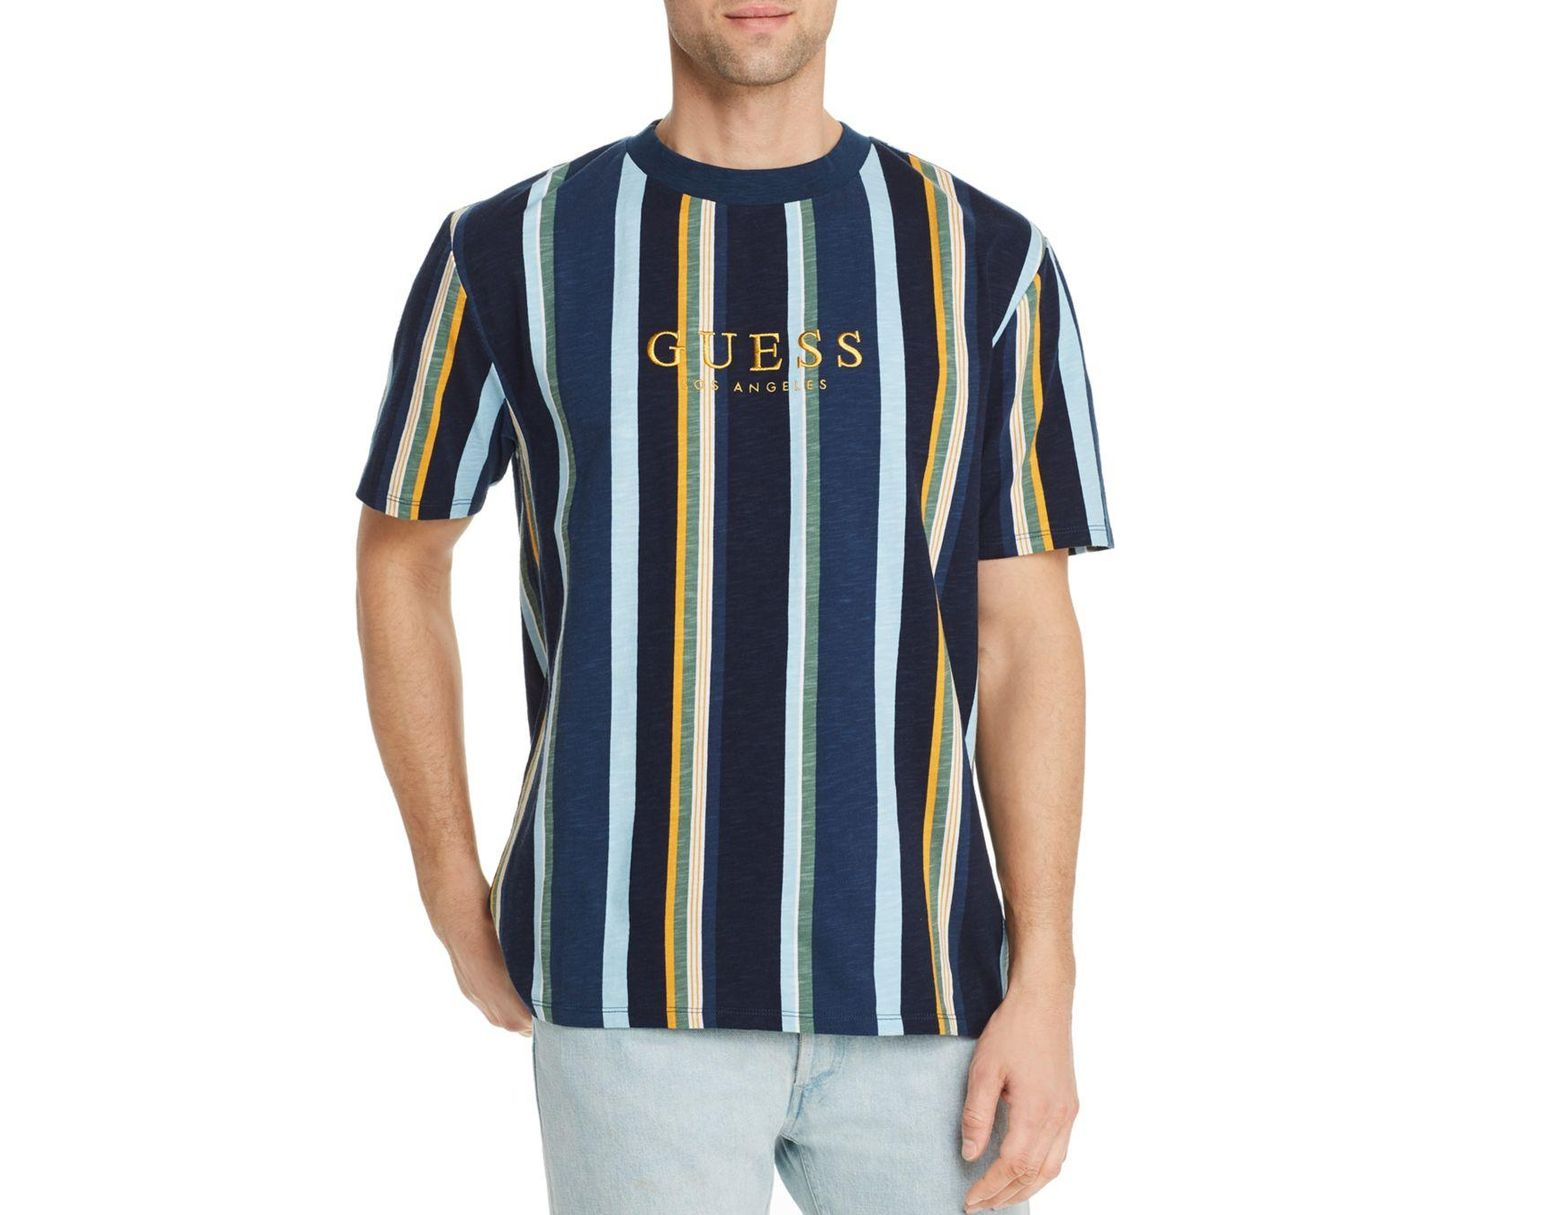 6f38b6665b Guess Striped Logo T-shirt in Blue for Men - Save 1% - Lyst